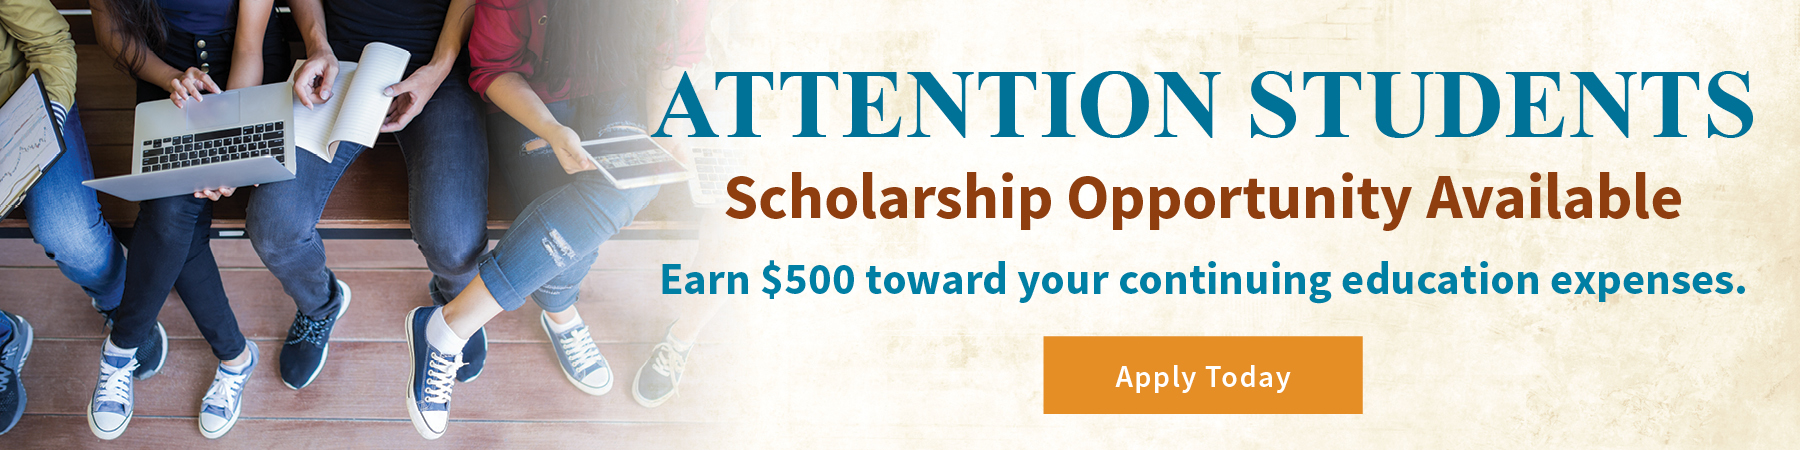 Student Scholarship Opportunity Available